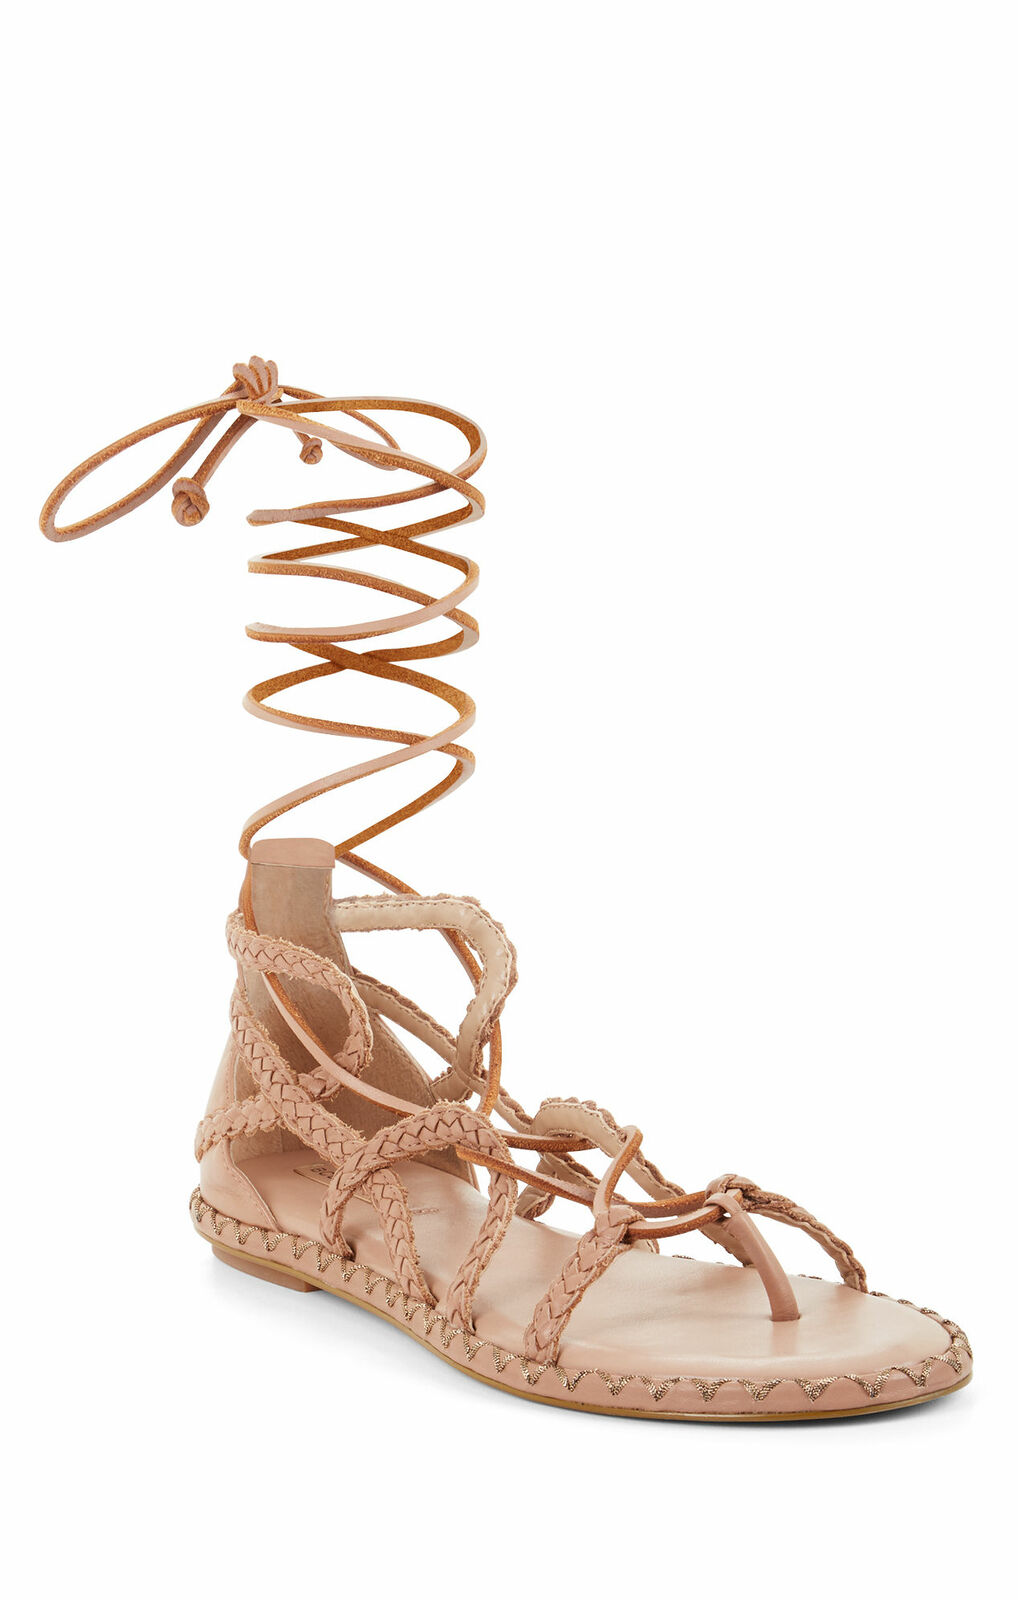 BCBG MAX AZRIA MAYE MAYE MAYE DEEP SAND LEATHER WOVEN LACE-UP FLAT GLADIATOR SANDALS 4995ca